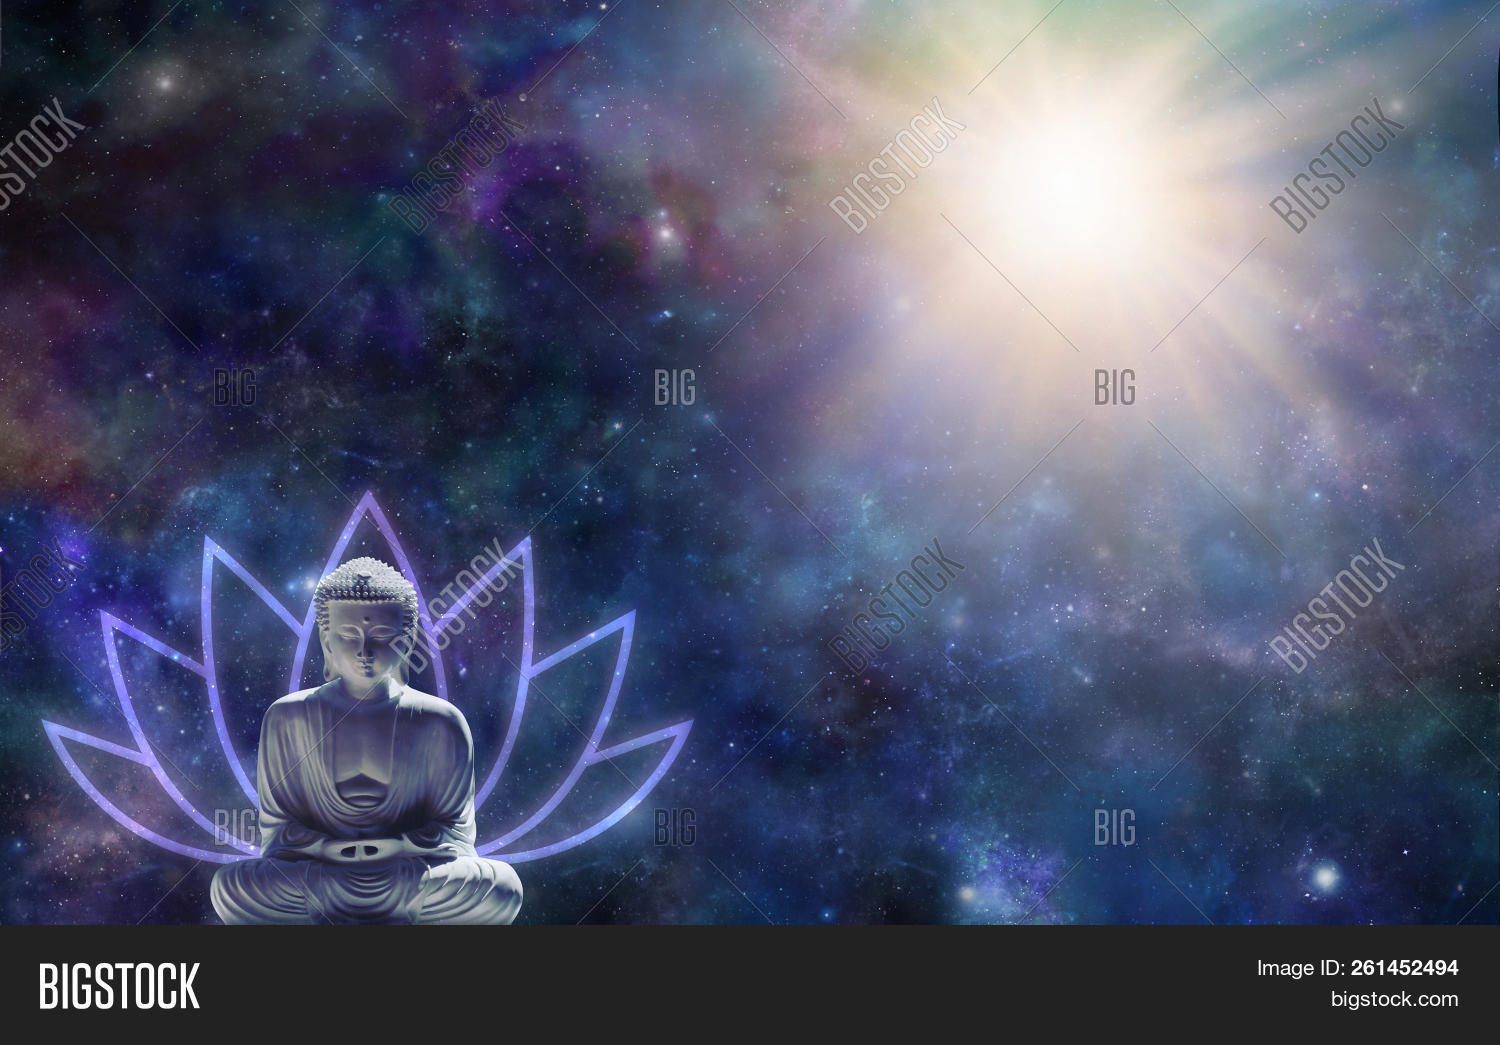 Buddhism Enlightenment Image Photo Free Trial Bigstock